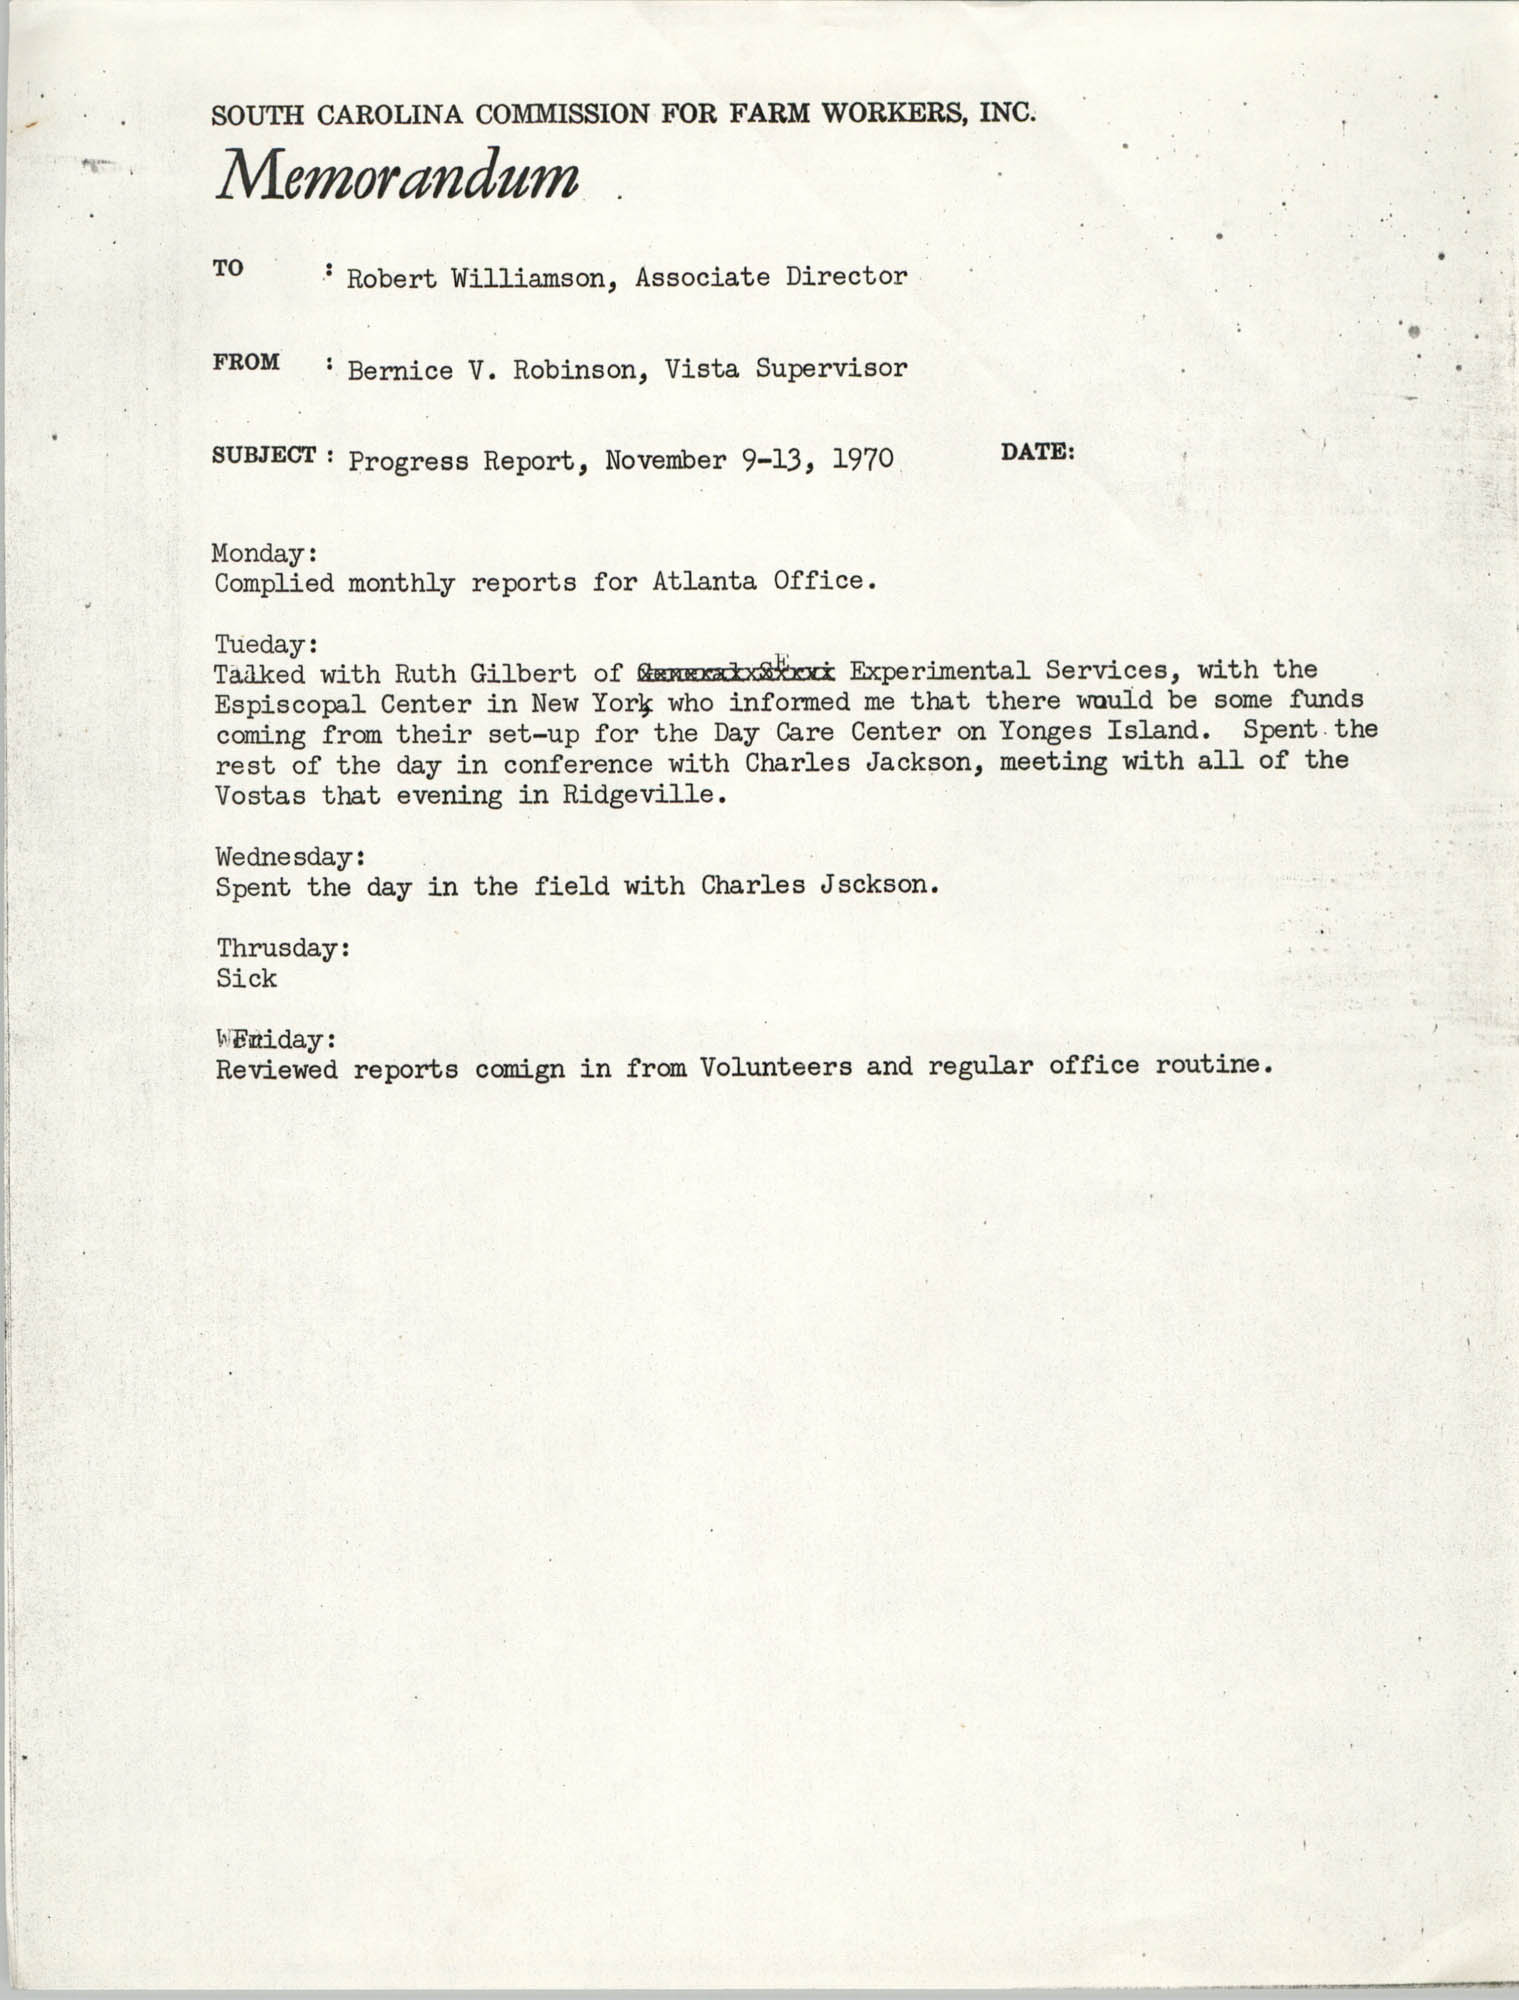 Memorandum from Bernice V. Robinson to Robert Williamson, November 1970